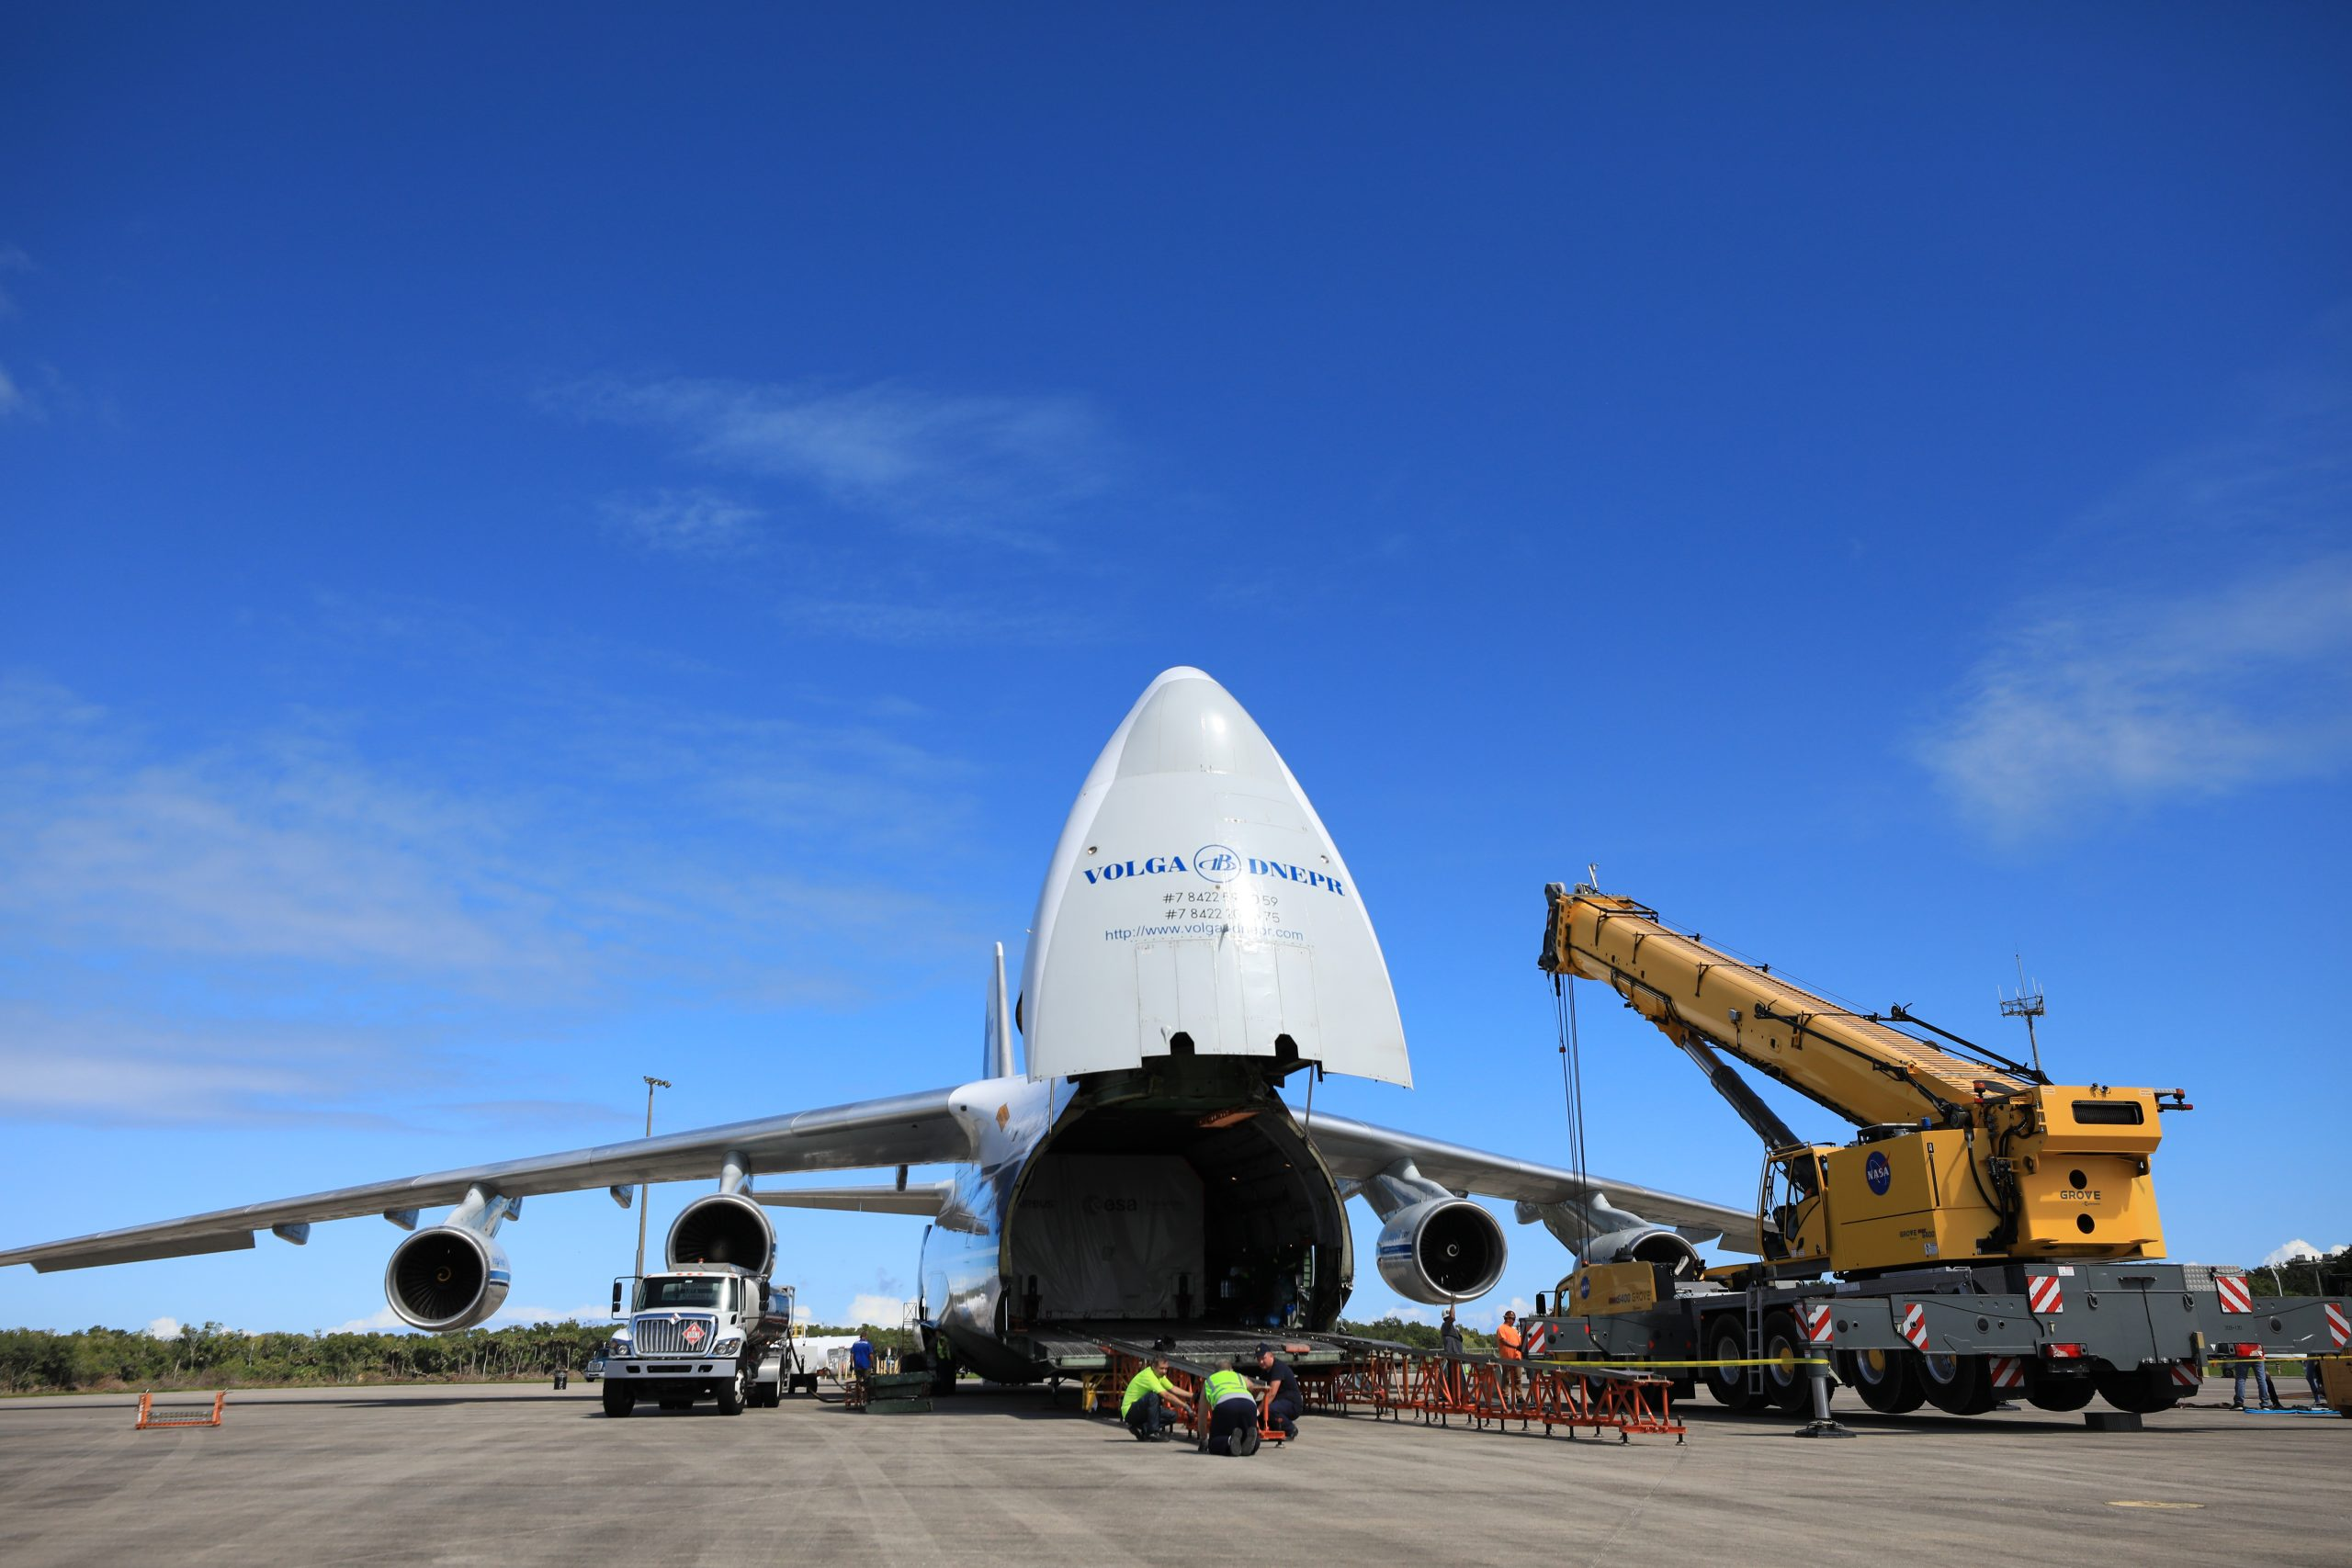 The European Service Module (ESM) for NASA's Orion spacecraft arrives at the Launch and Landing Facility at NASA's Kennedy Space Center in Florida on Thursday, Oct. 14, 2021.